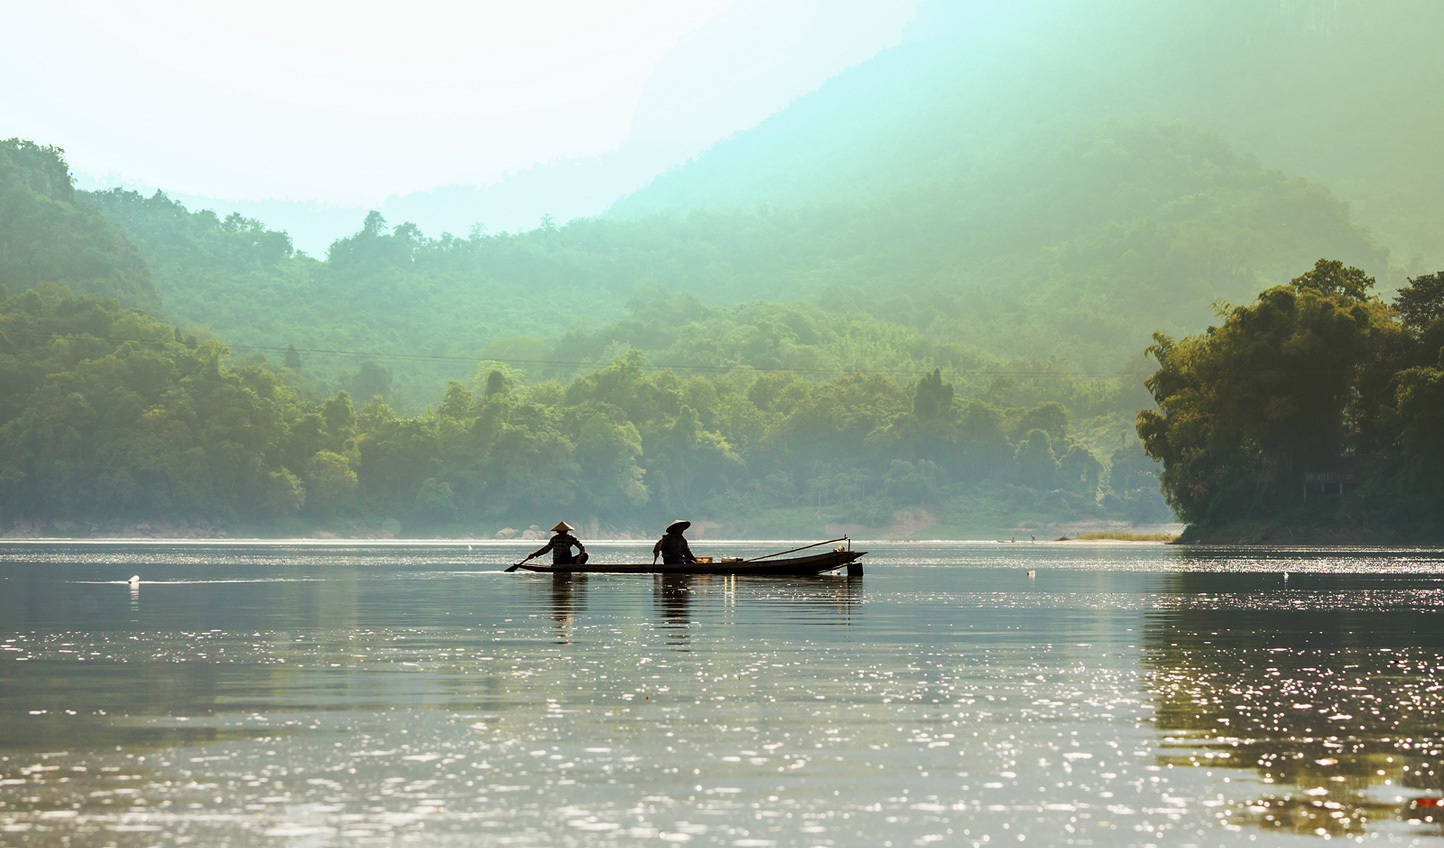 Head to Laos and be guided down the Mekong River in a traditional tailboat